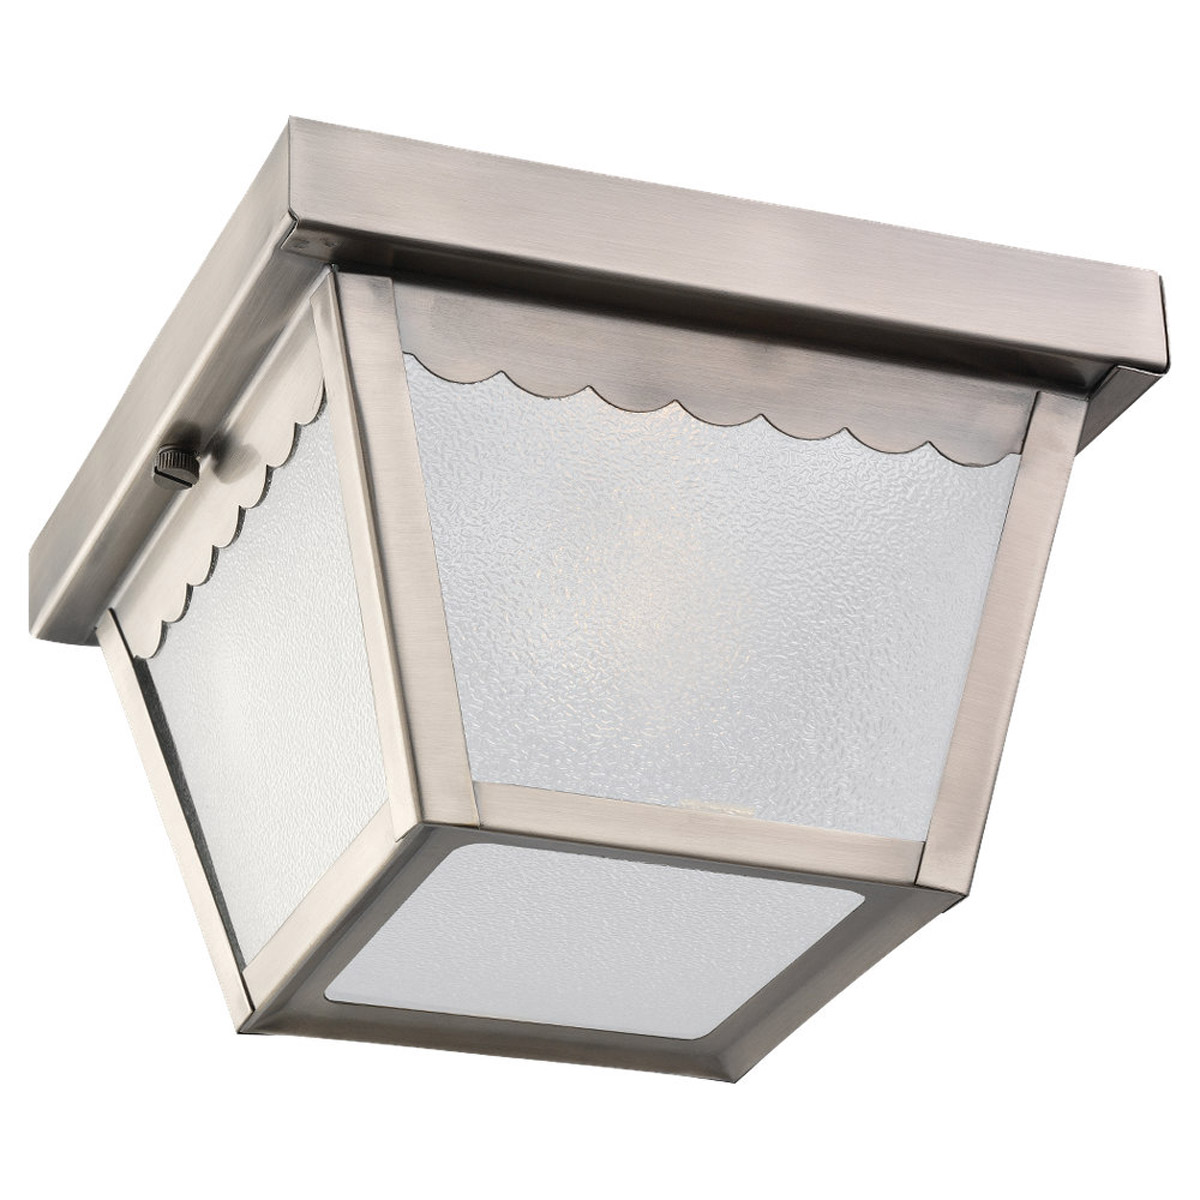 Sea Gull 75467-965 Signature 1 Light 8 inch Antique Brushed Nickel Outdoor Ceiling Fixture photo